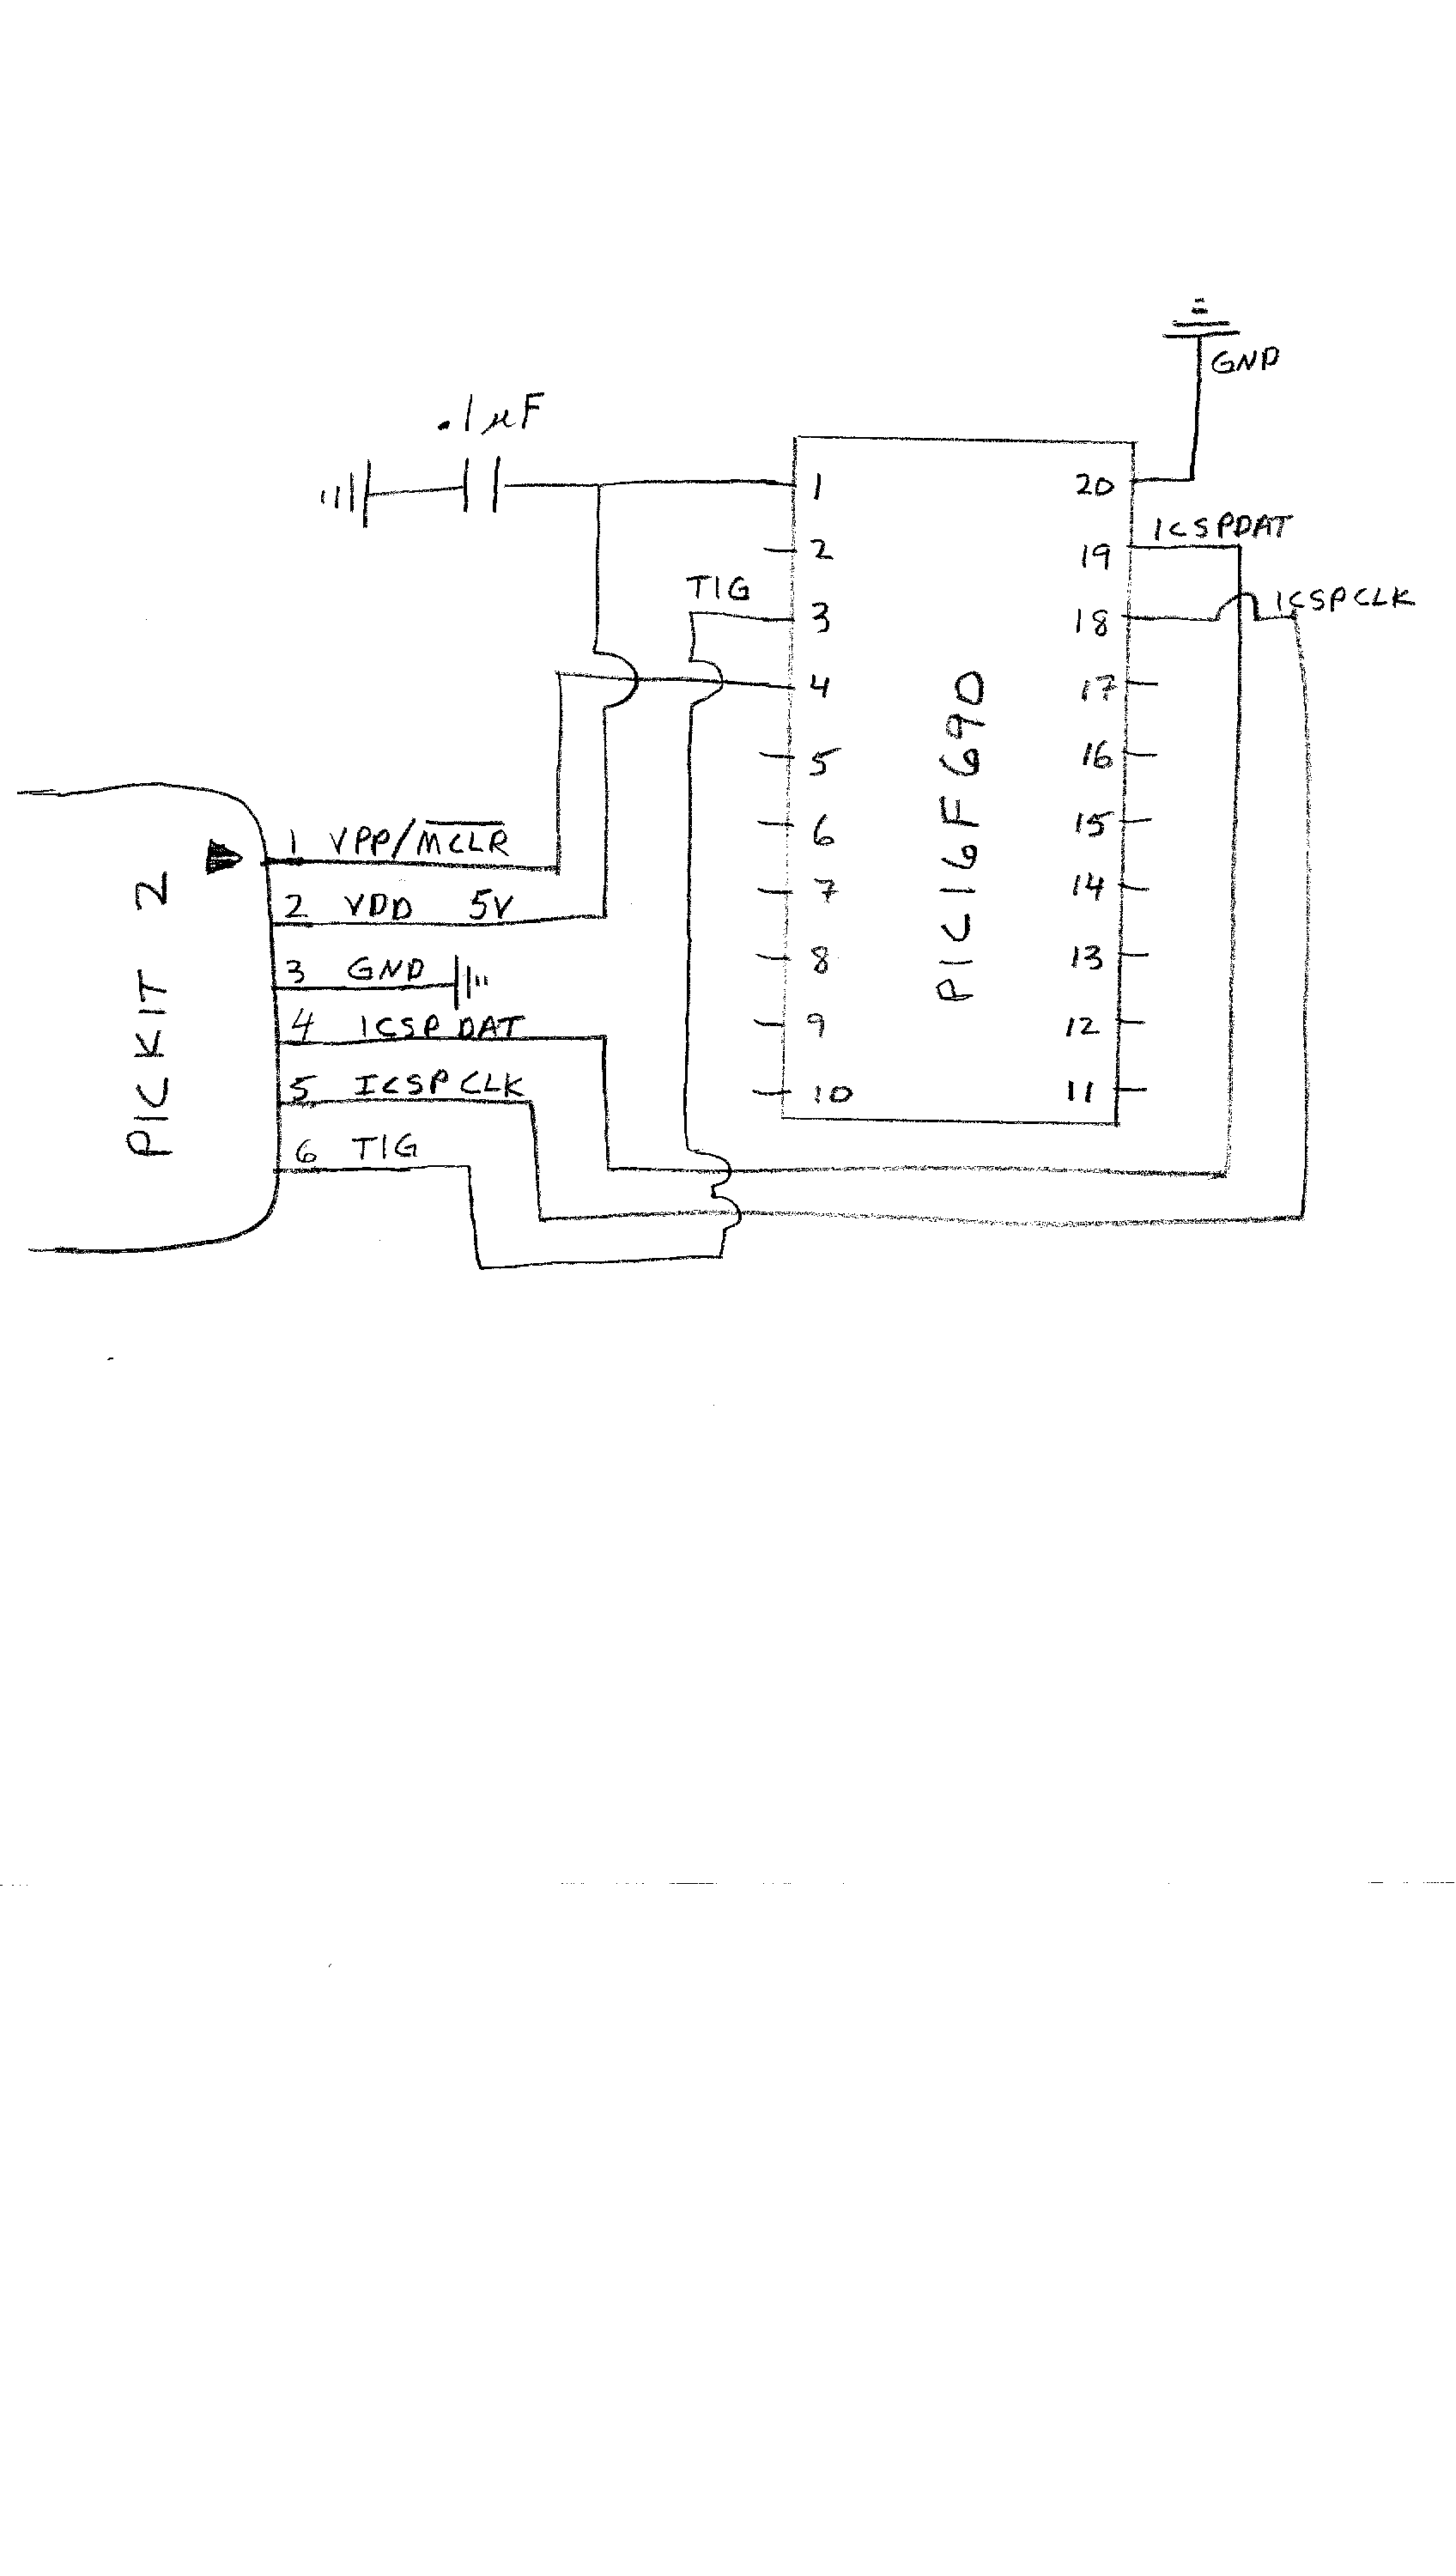 pickit 2 programmer circuit diagram 4 3 liter engine first program the pic chip with test asm